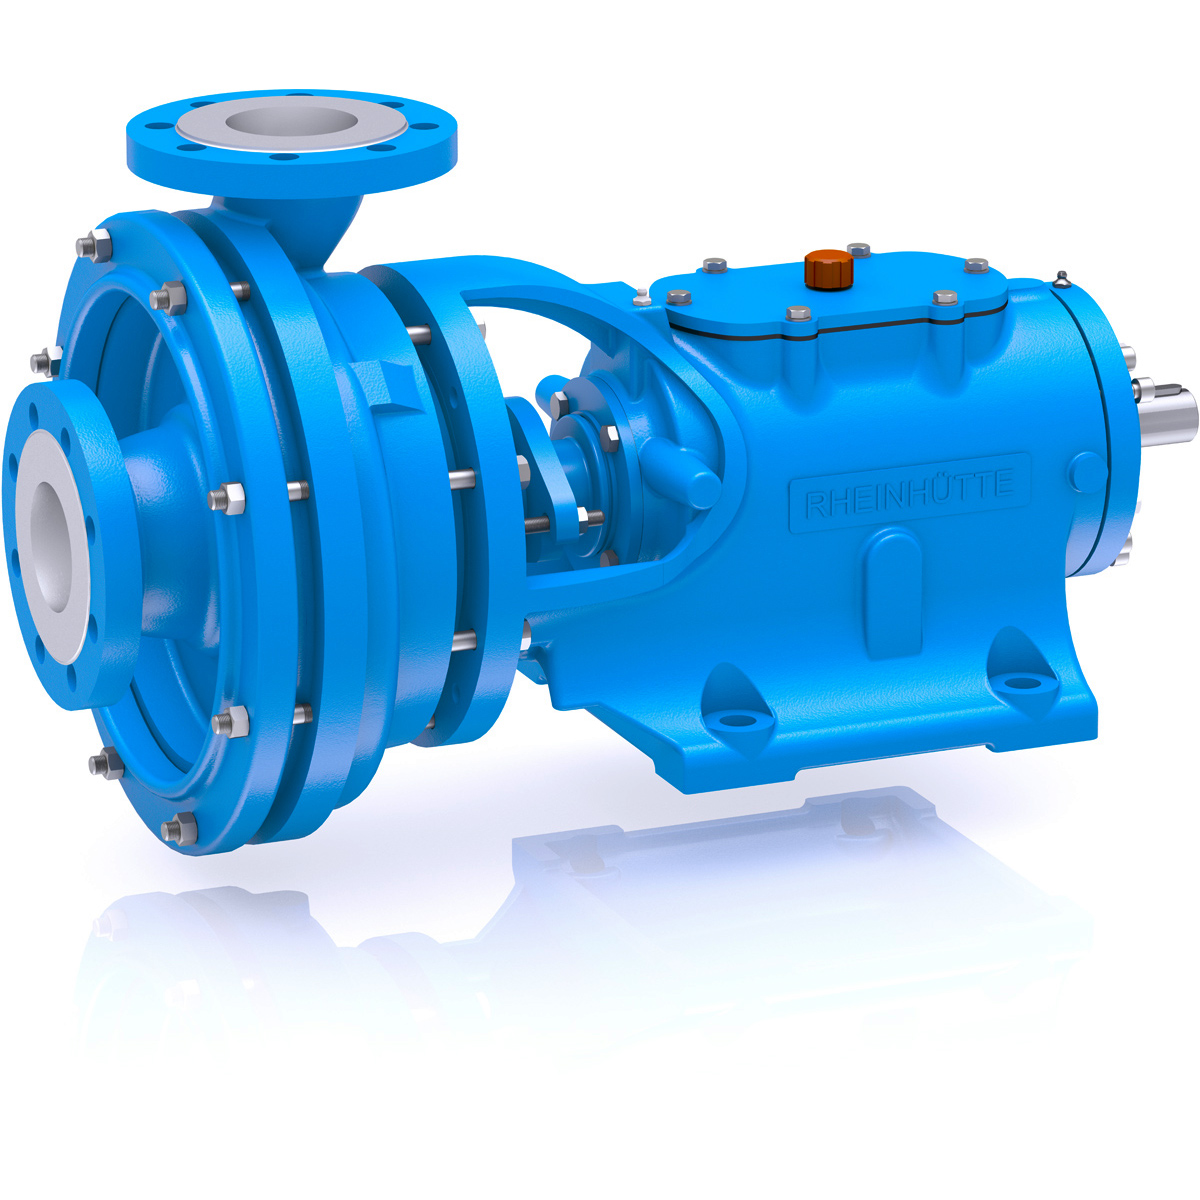 Material Metal Design Pumps for applications according to API 610 (ISO 13709SizeDN 32 - DN 300Delivery rateQmax. = 2.500 m3/hDelivery headHmax. = 180 mTemperature-40 °C to +450 °CNominal pressure16 bar